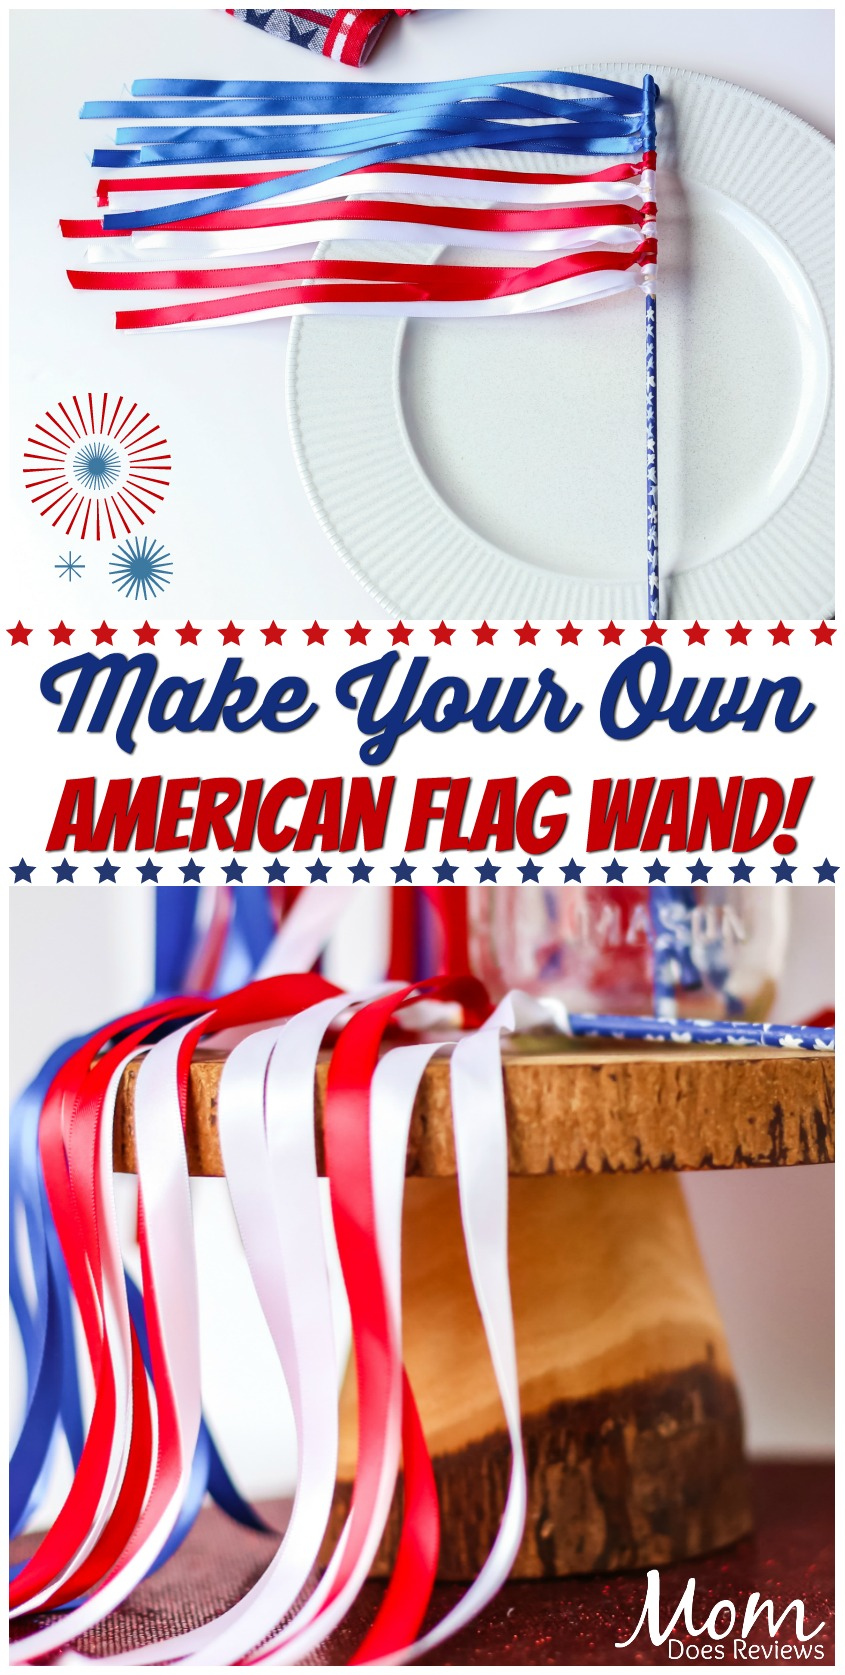 Make Your Own American Flag Wand! #crafts #flag #patriotic #funcrafts